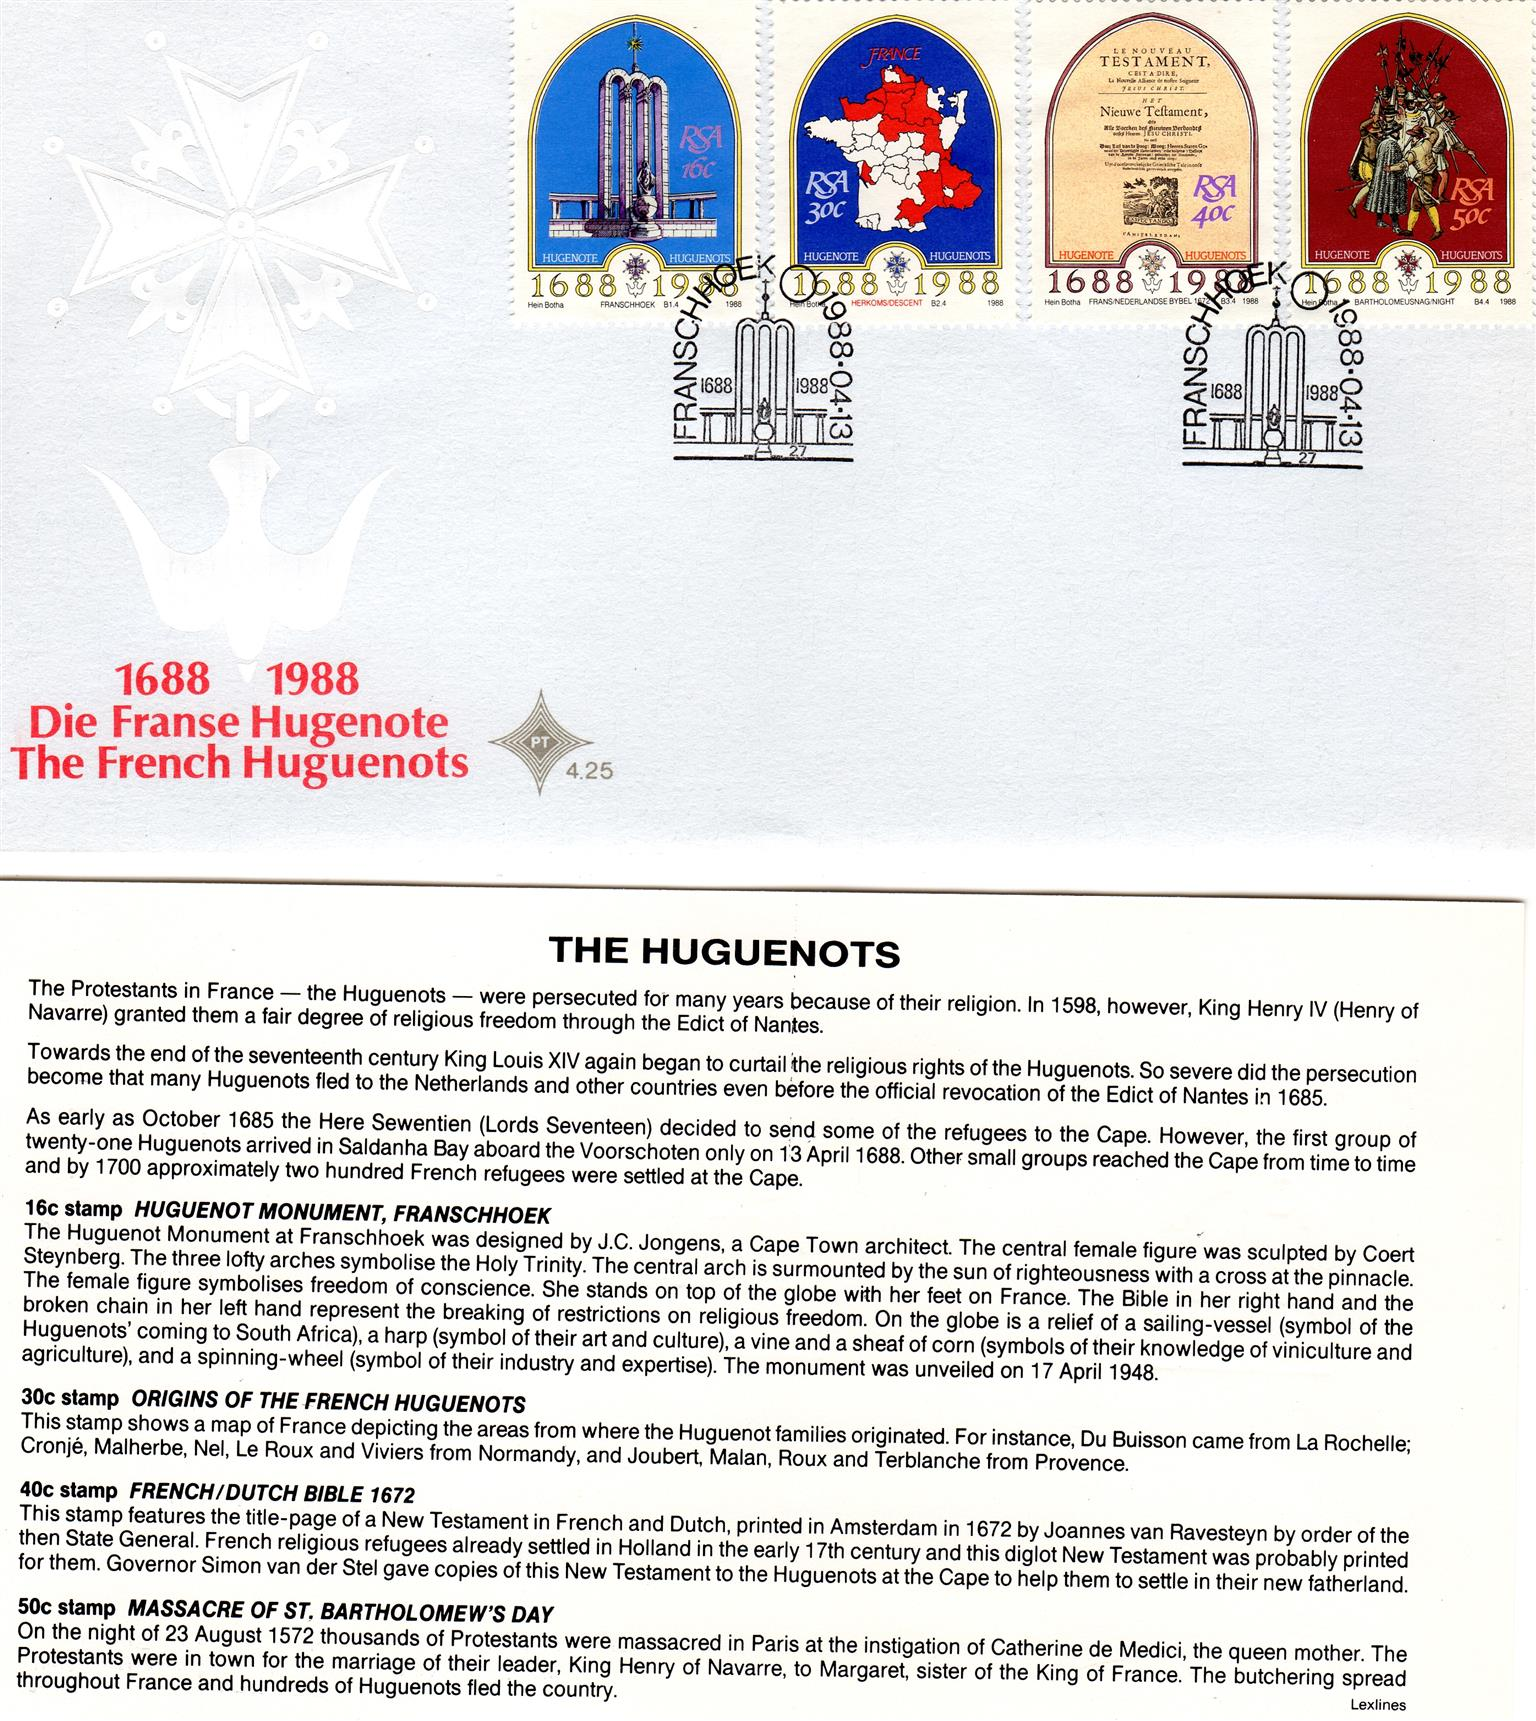 Commemorative Stamp & Envelope Set - The French Huguenots 1988